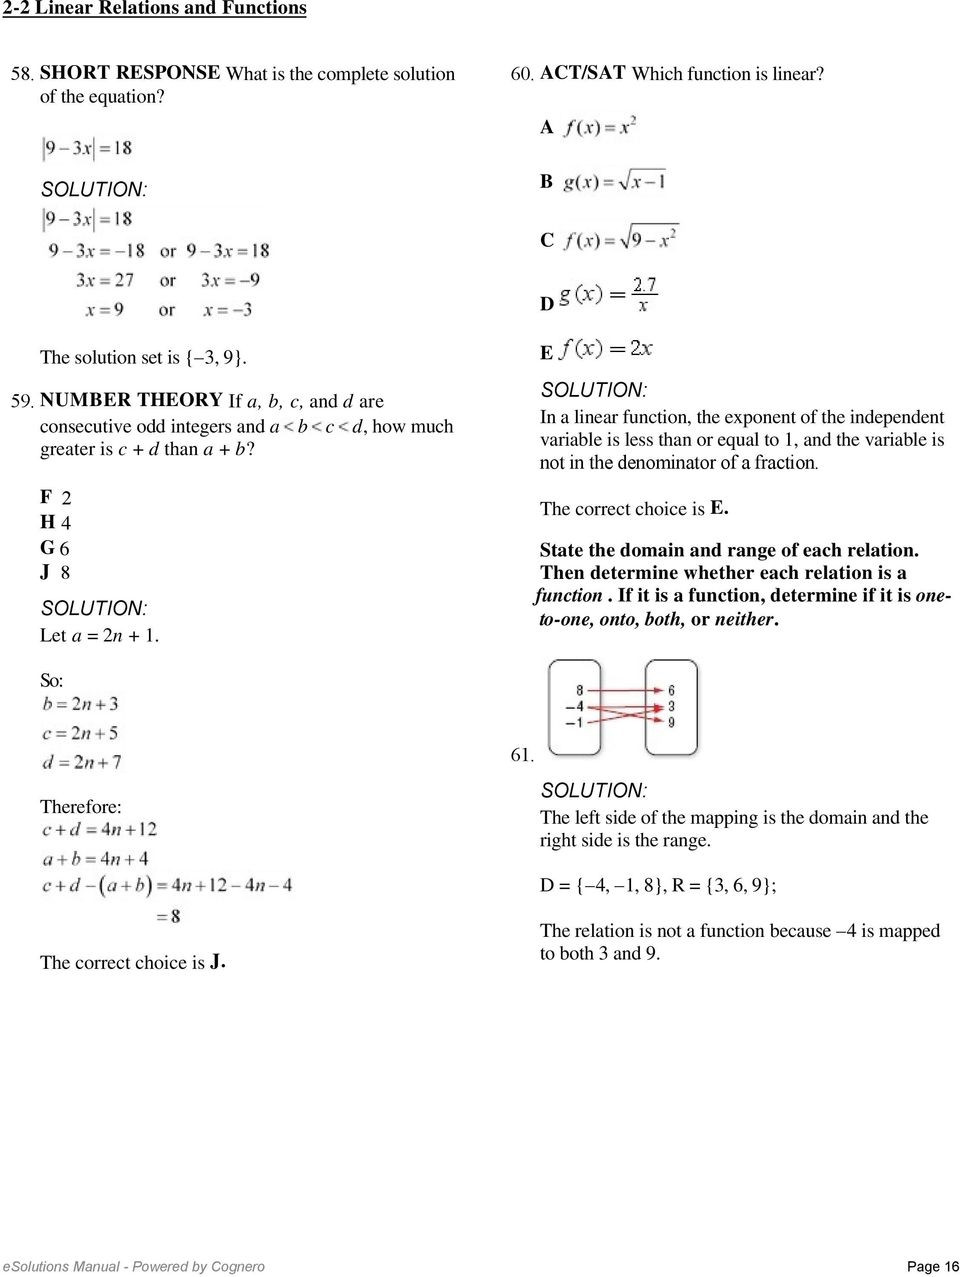 Functions and Relations Worksheet 2 2 Linear Relations and Functions so the Function is